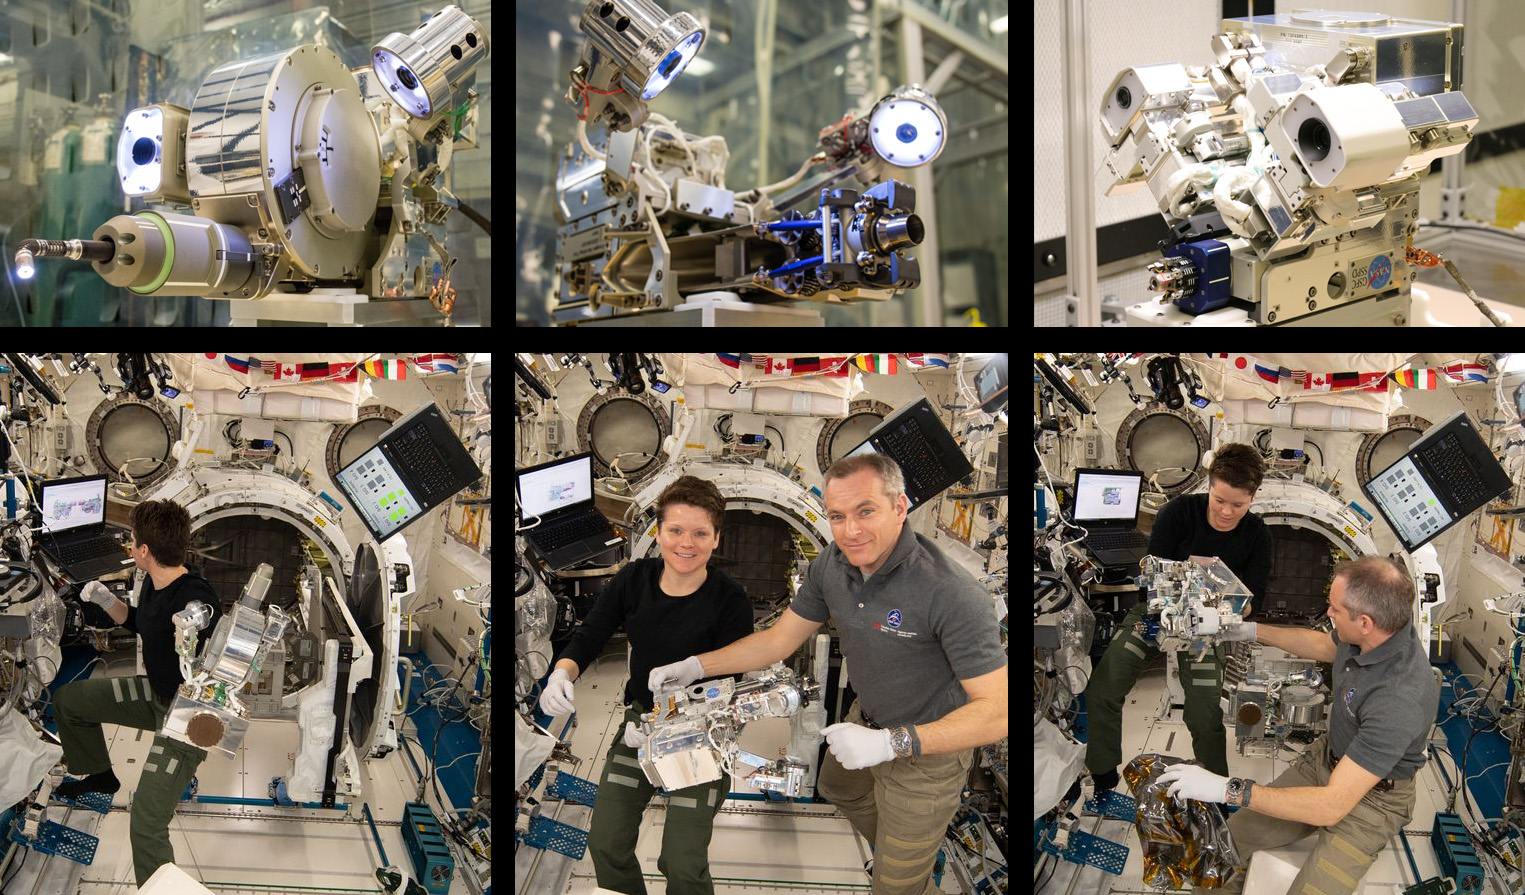 NASA astronaut Anne McClain and Canadian Space Agency astronaut David Saint-Jacques work to assemble the tools for the Robotic Refueling Mission 3 experiment. Photo Credit: NASA